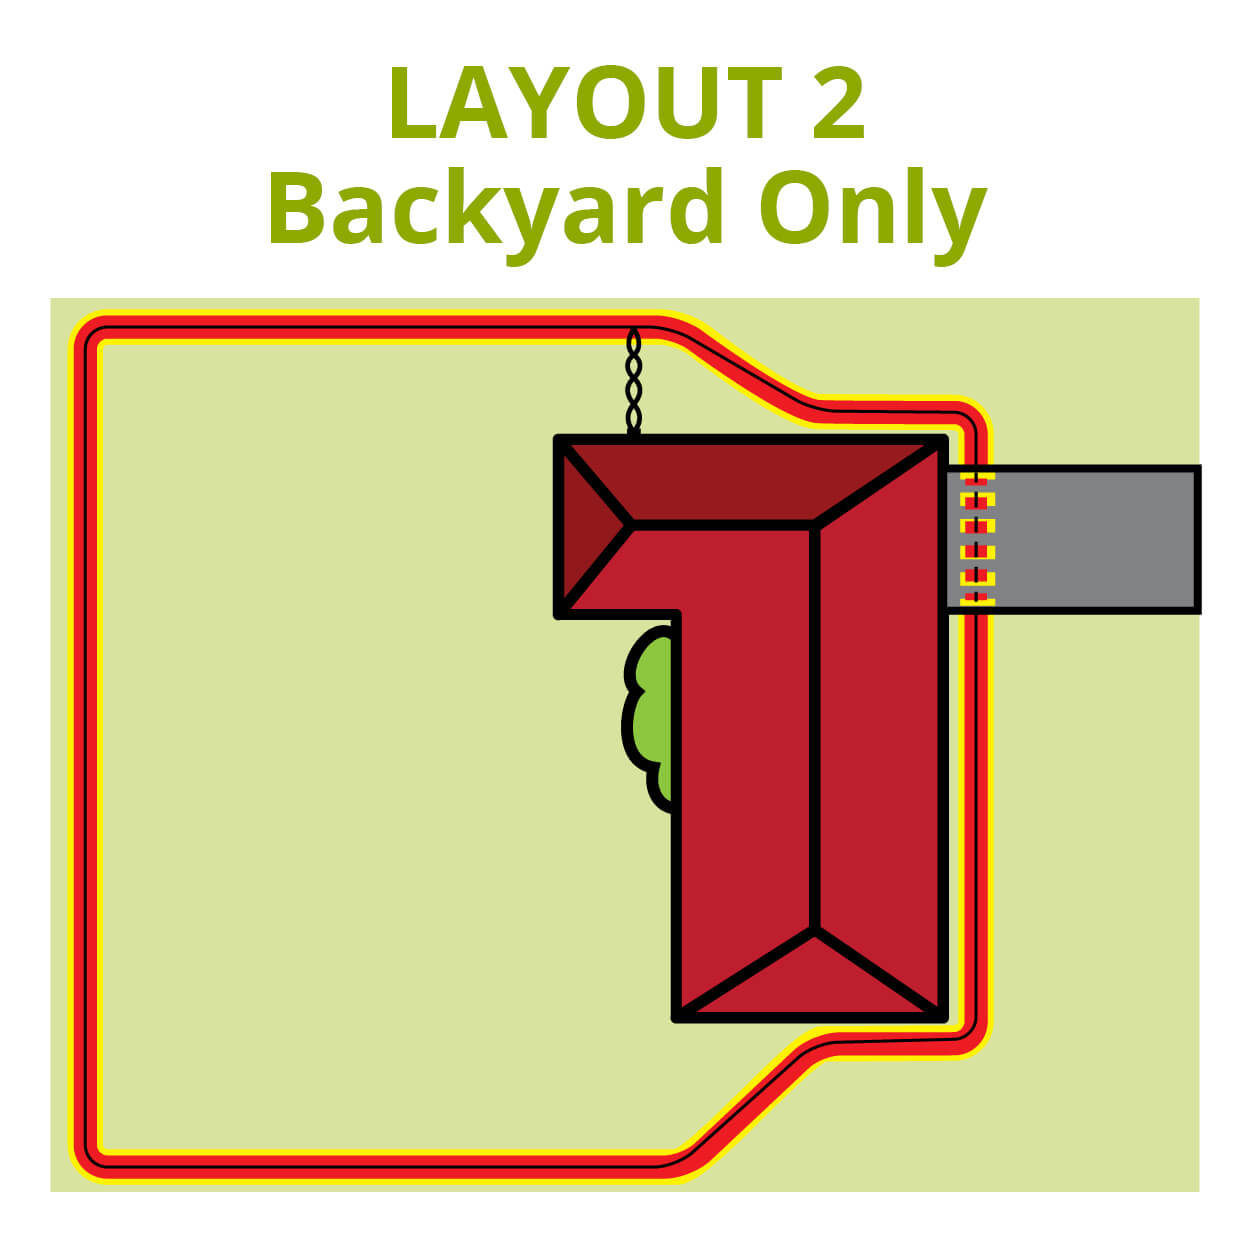 Dog Fence Backyard Escaping Layout